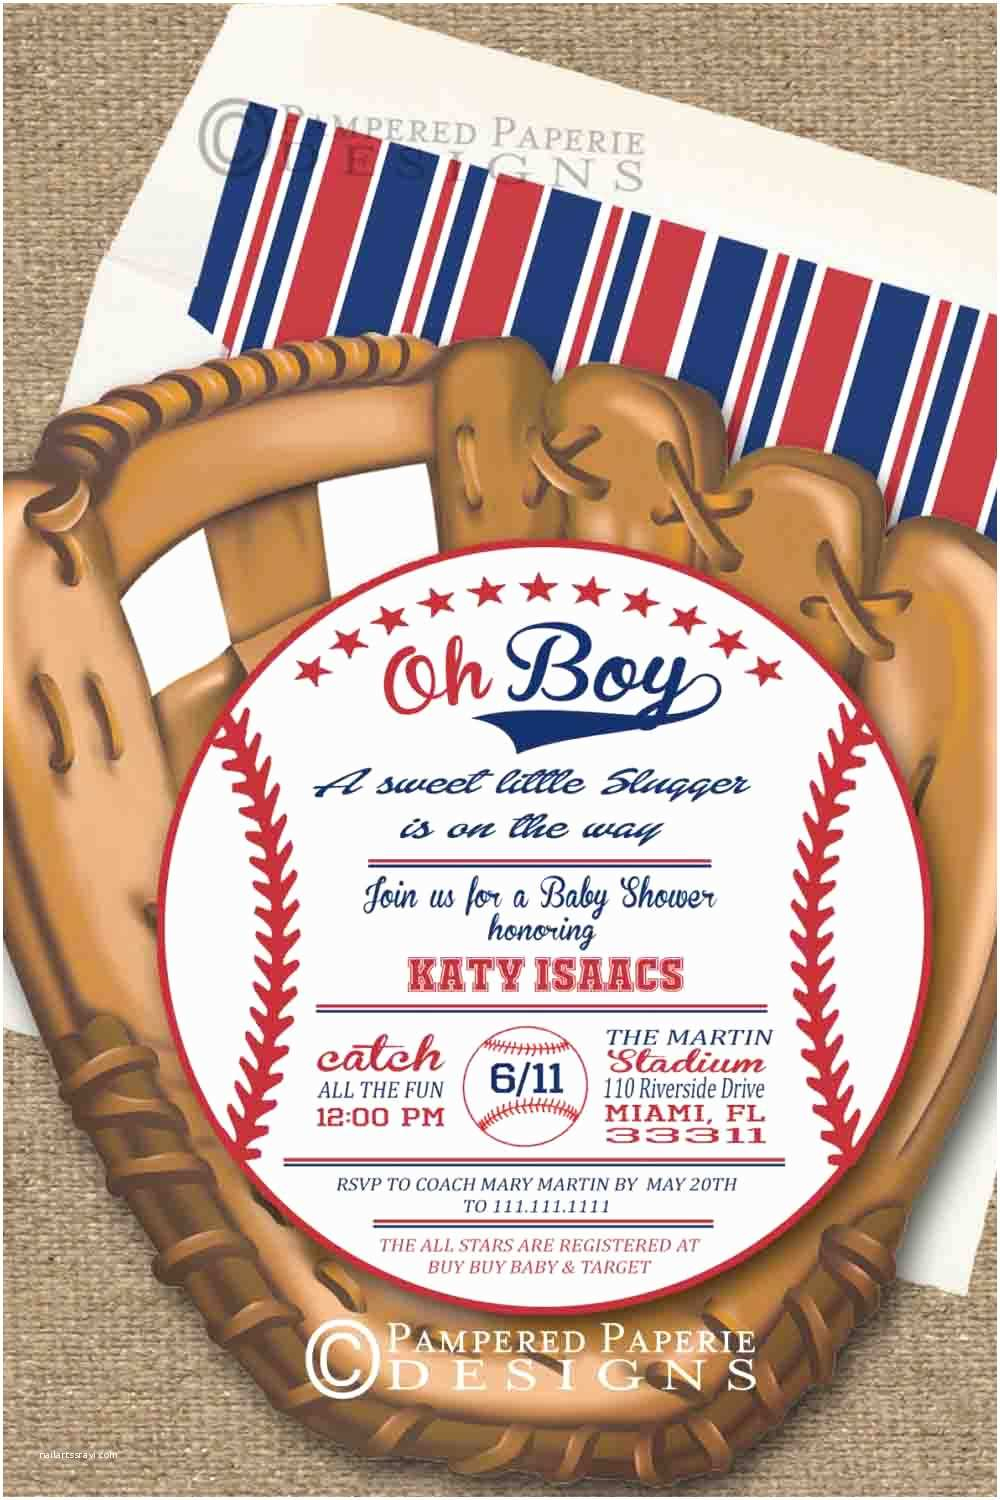 Baseball Party Invitations 100 Baseball Party Ideas—by A Professional Party Planner